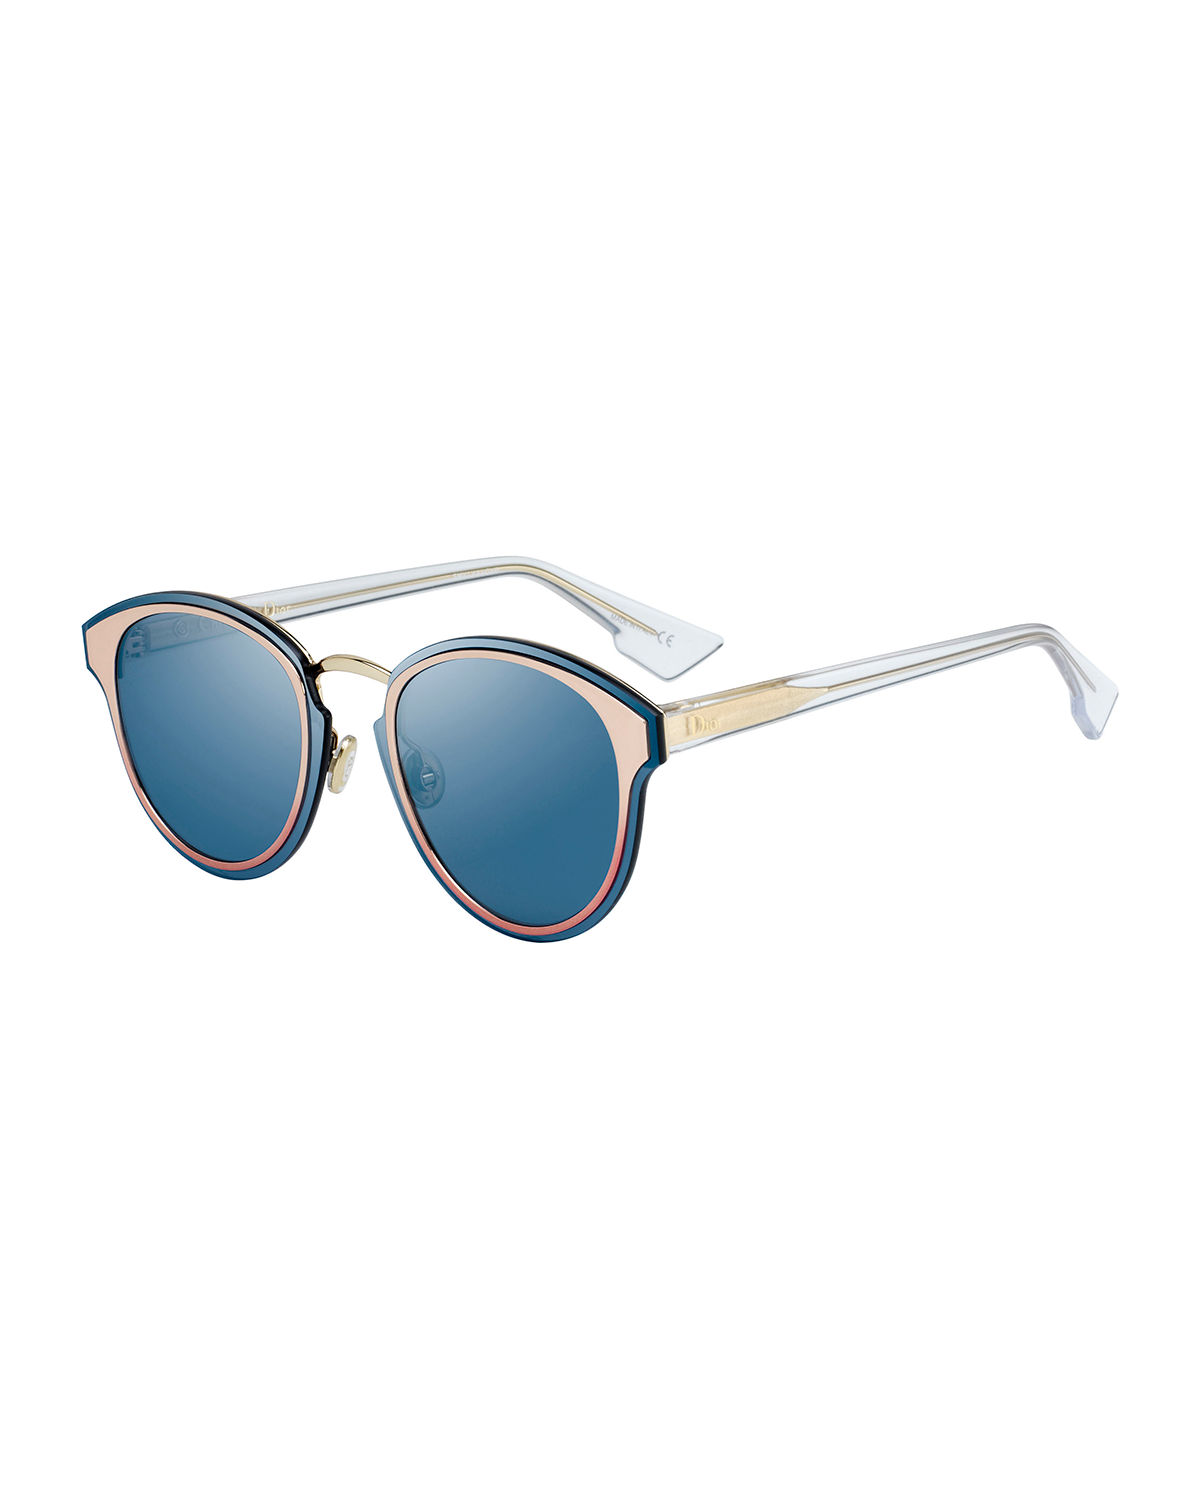 5aafa6568d65f Dior DiorNightfall Square Mirrored Sunglasses